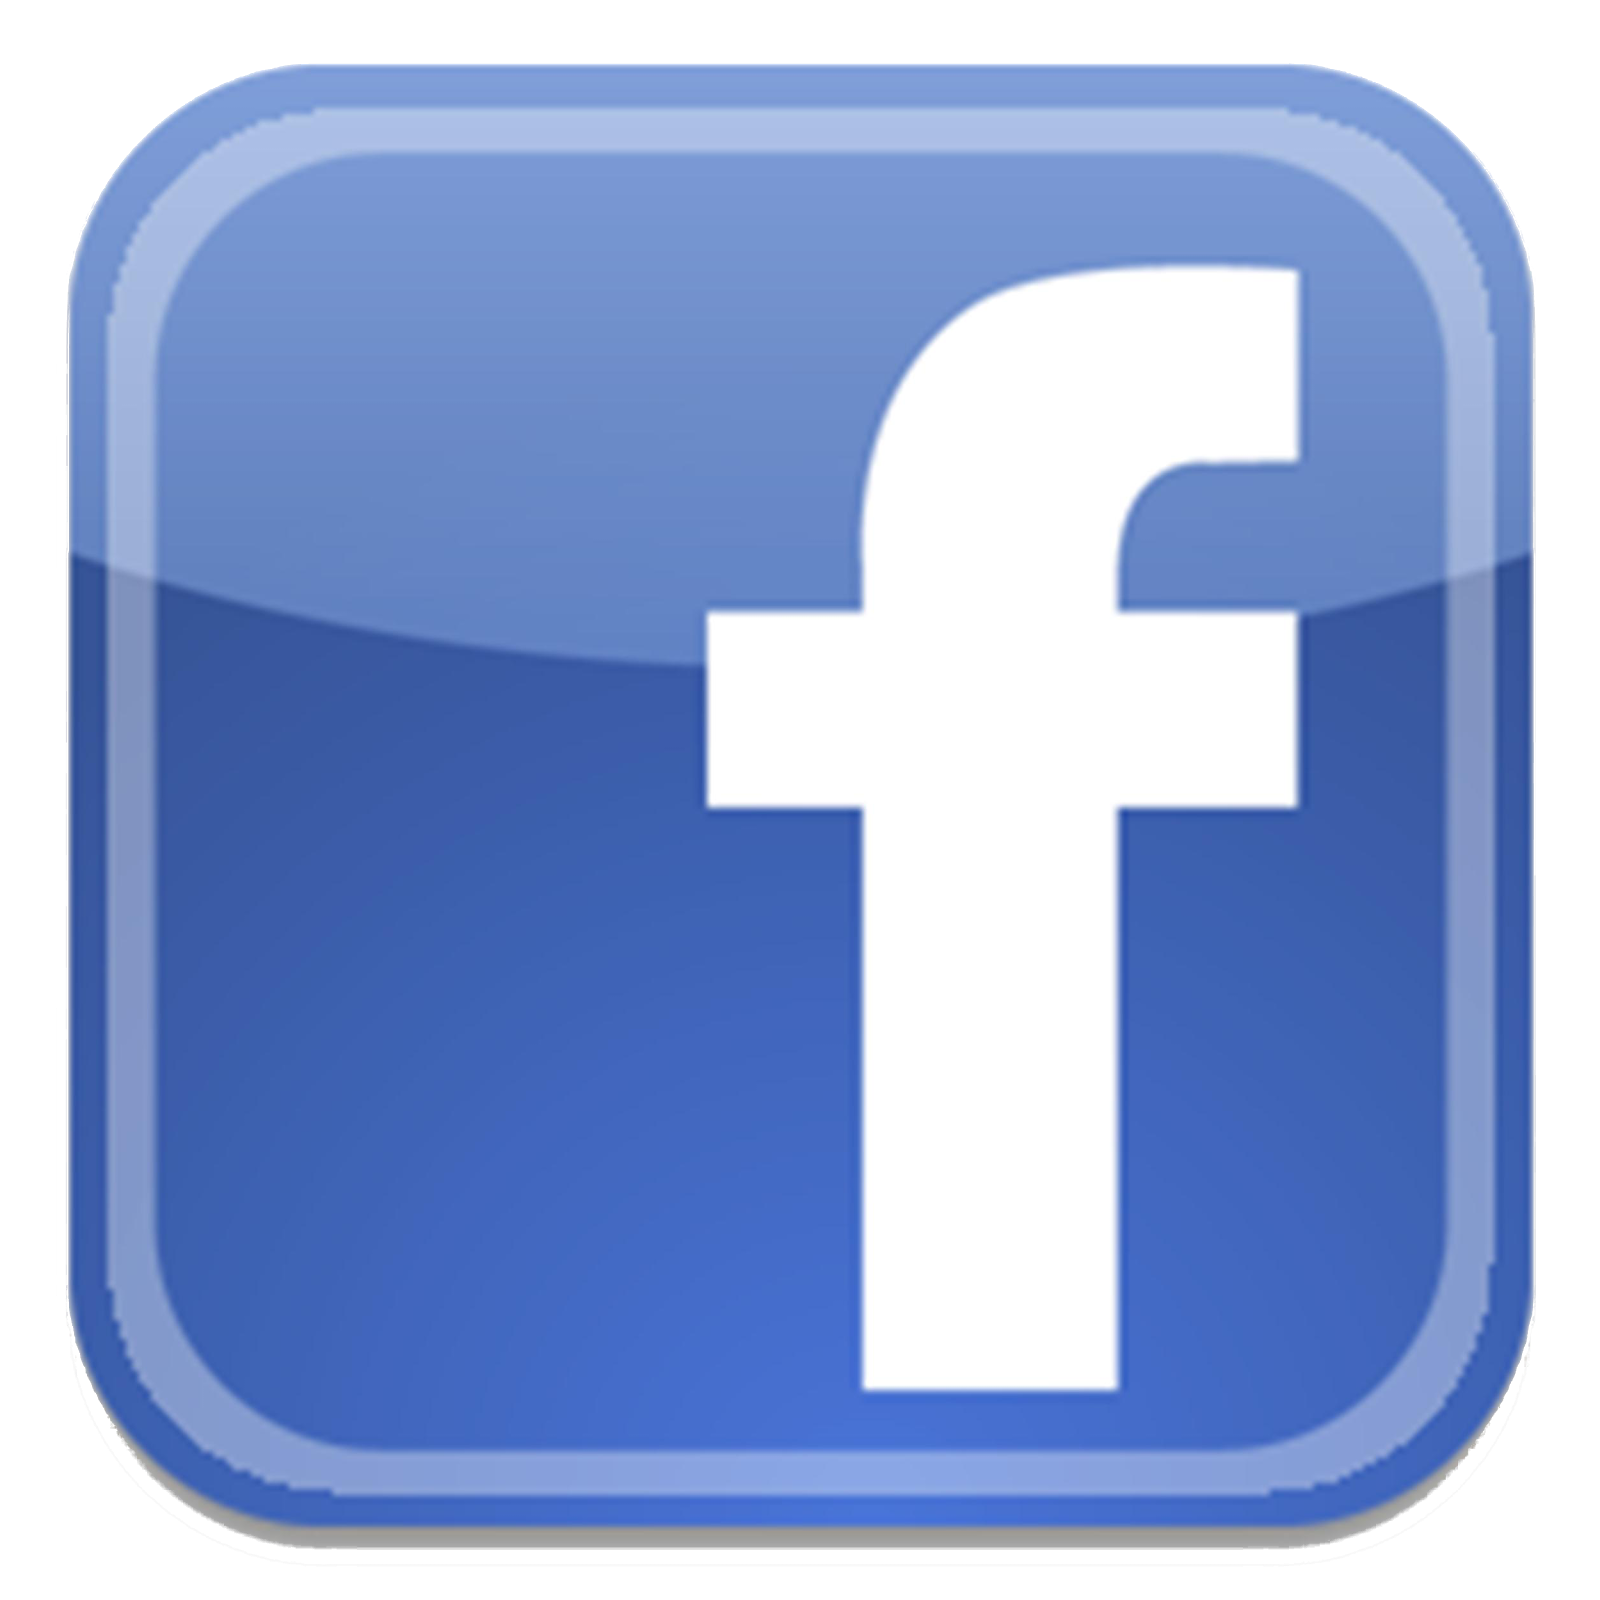 the gallery for gt facebook f logo png